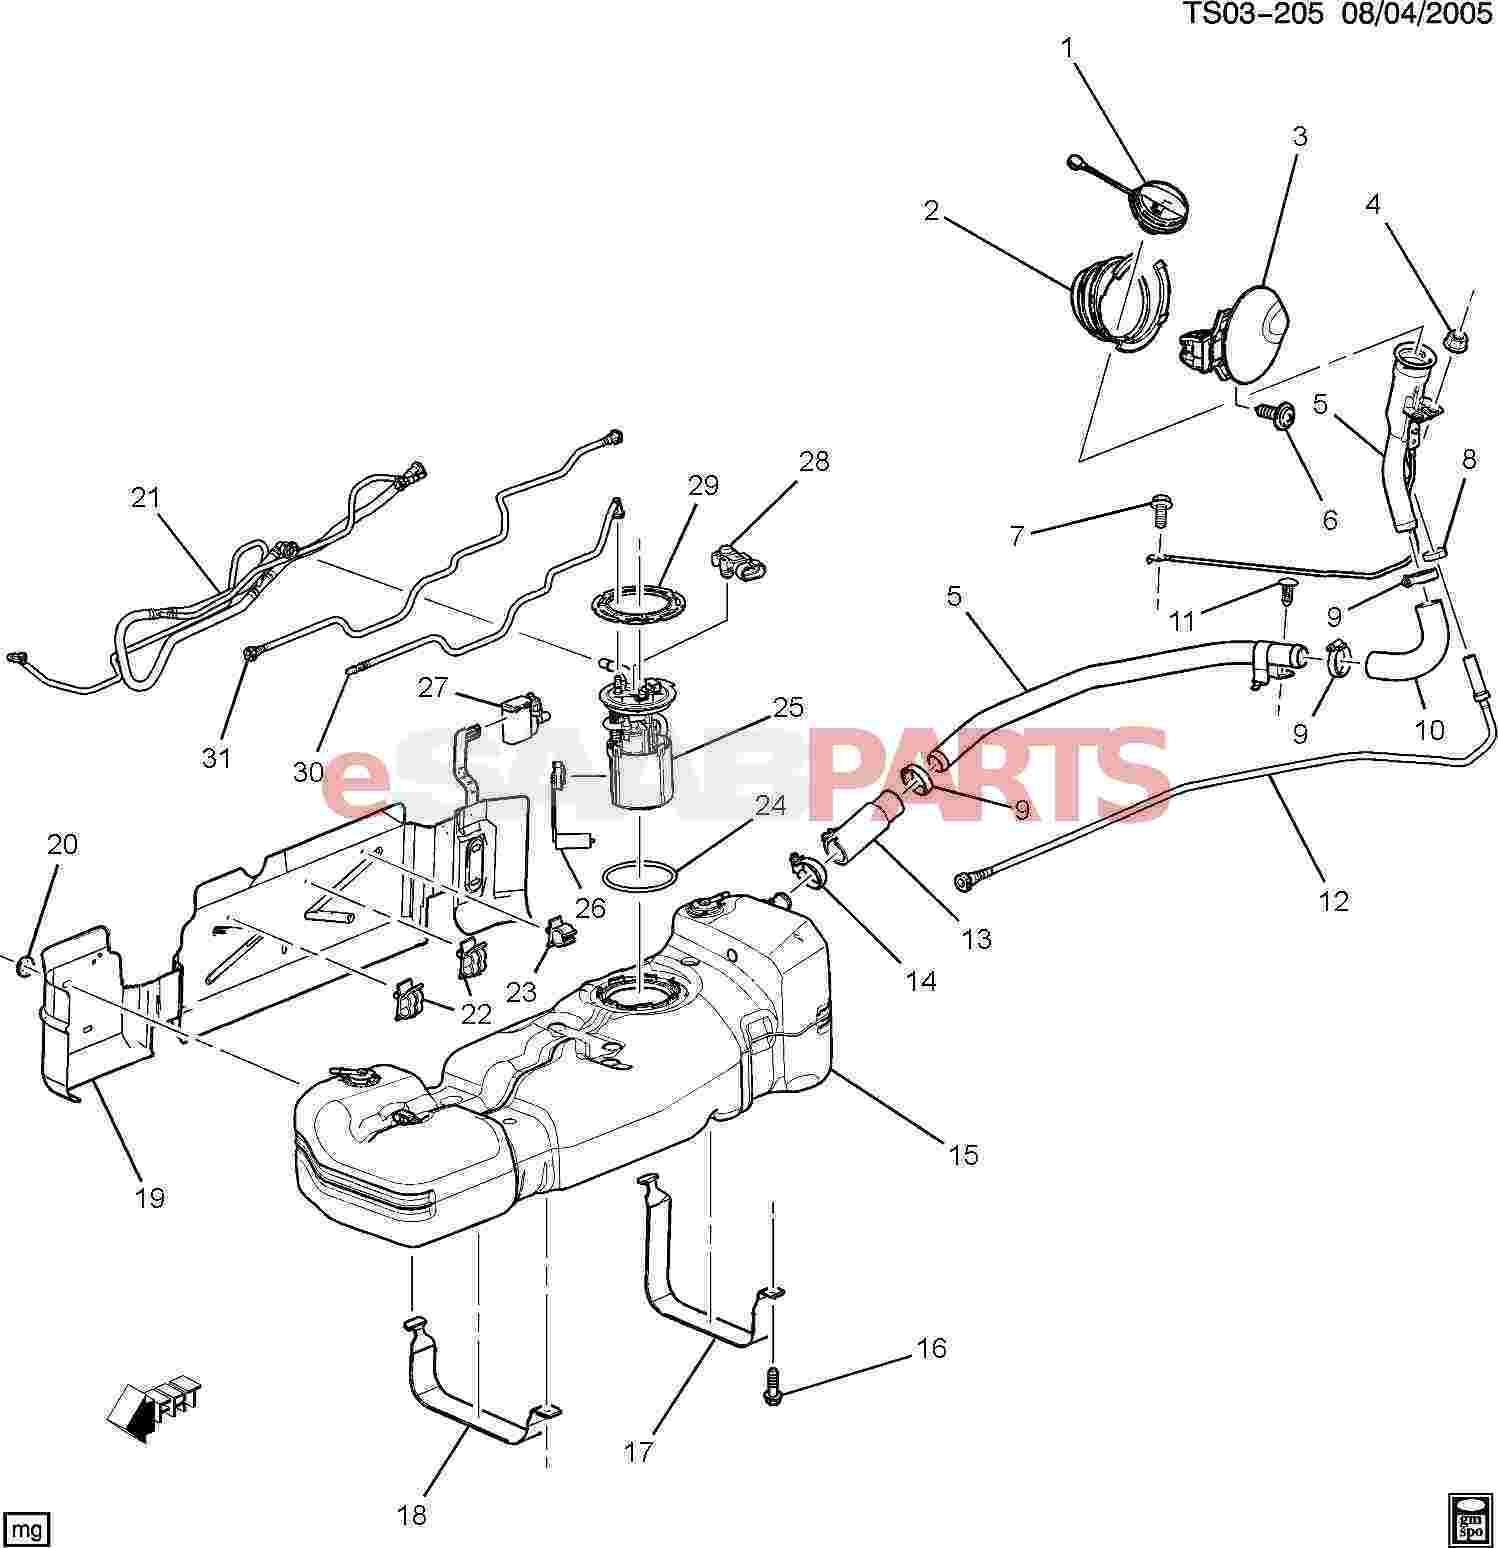 Chevy Trailblazer Power Steering Diagram